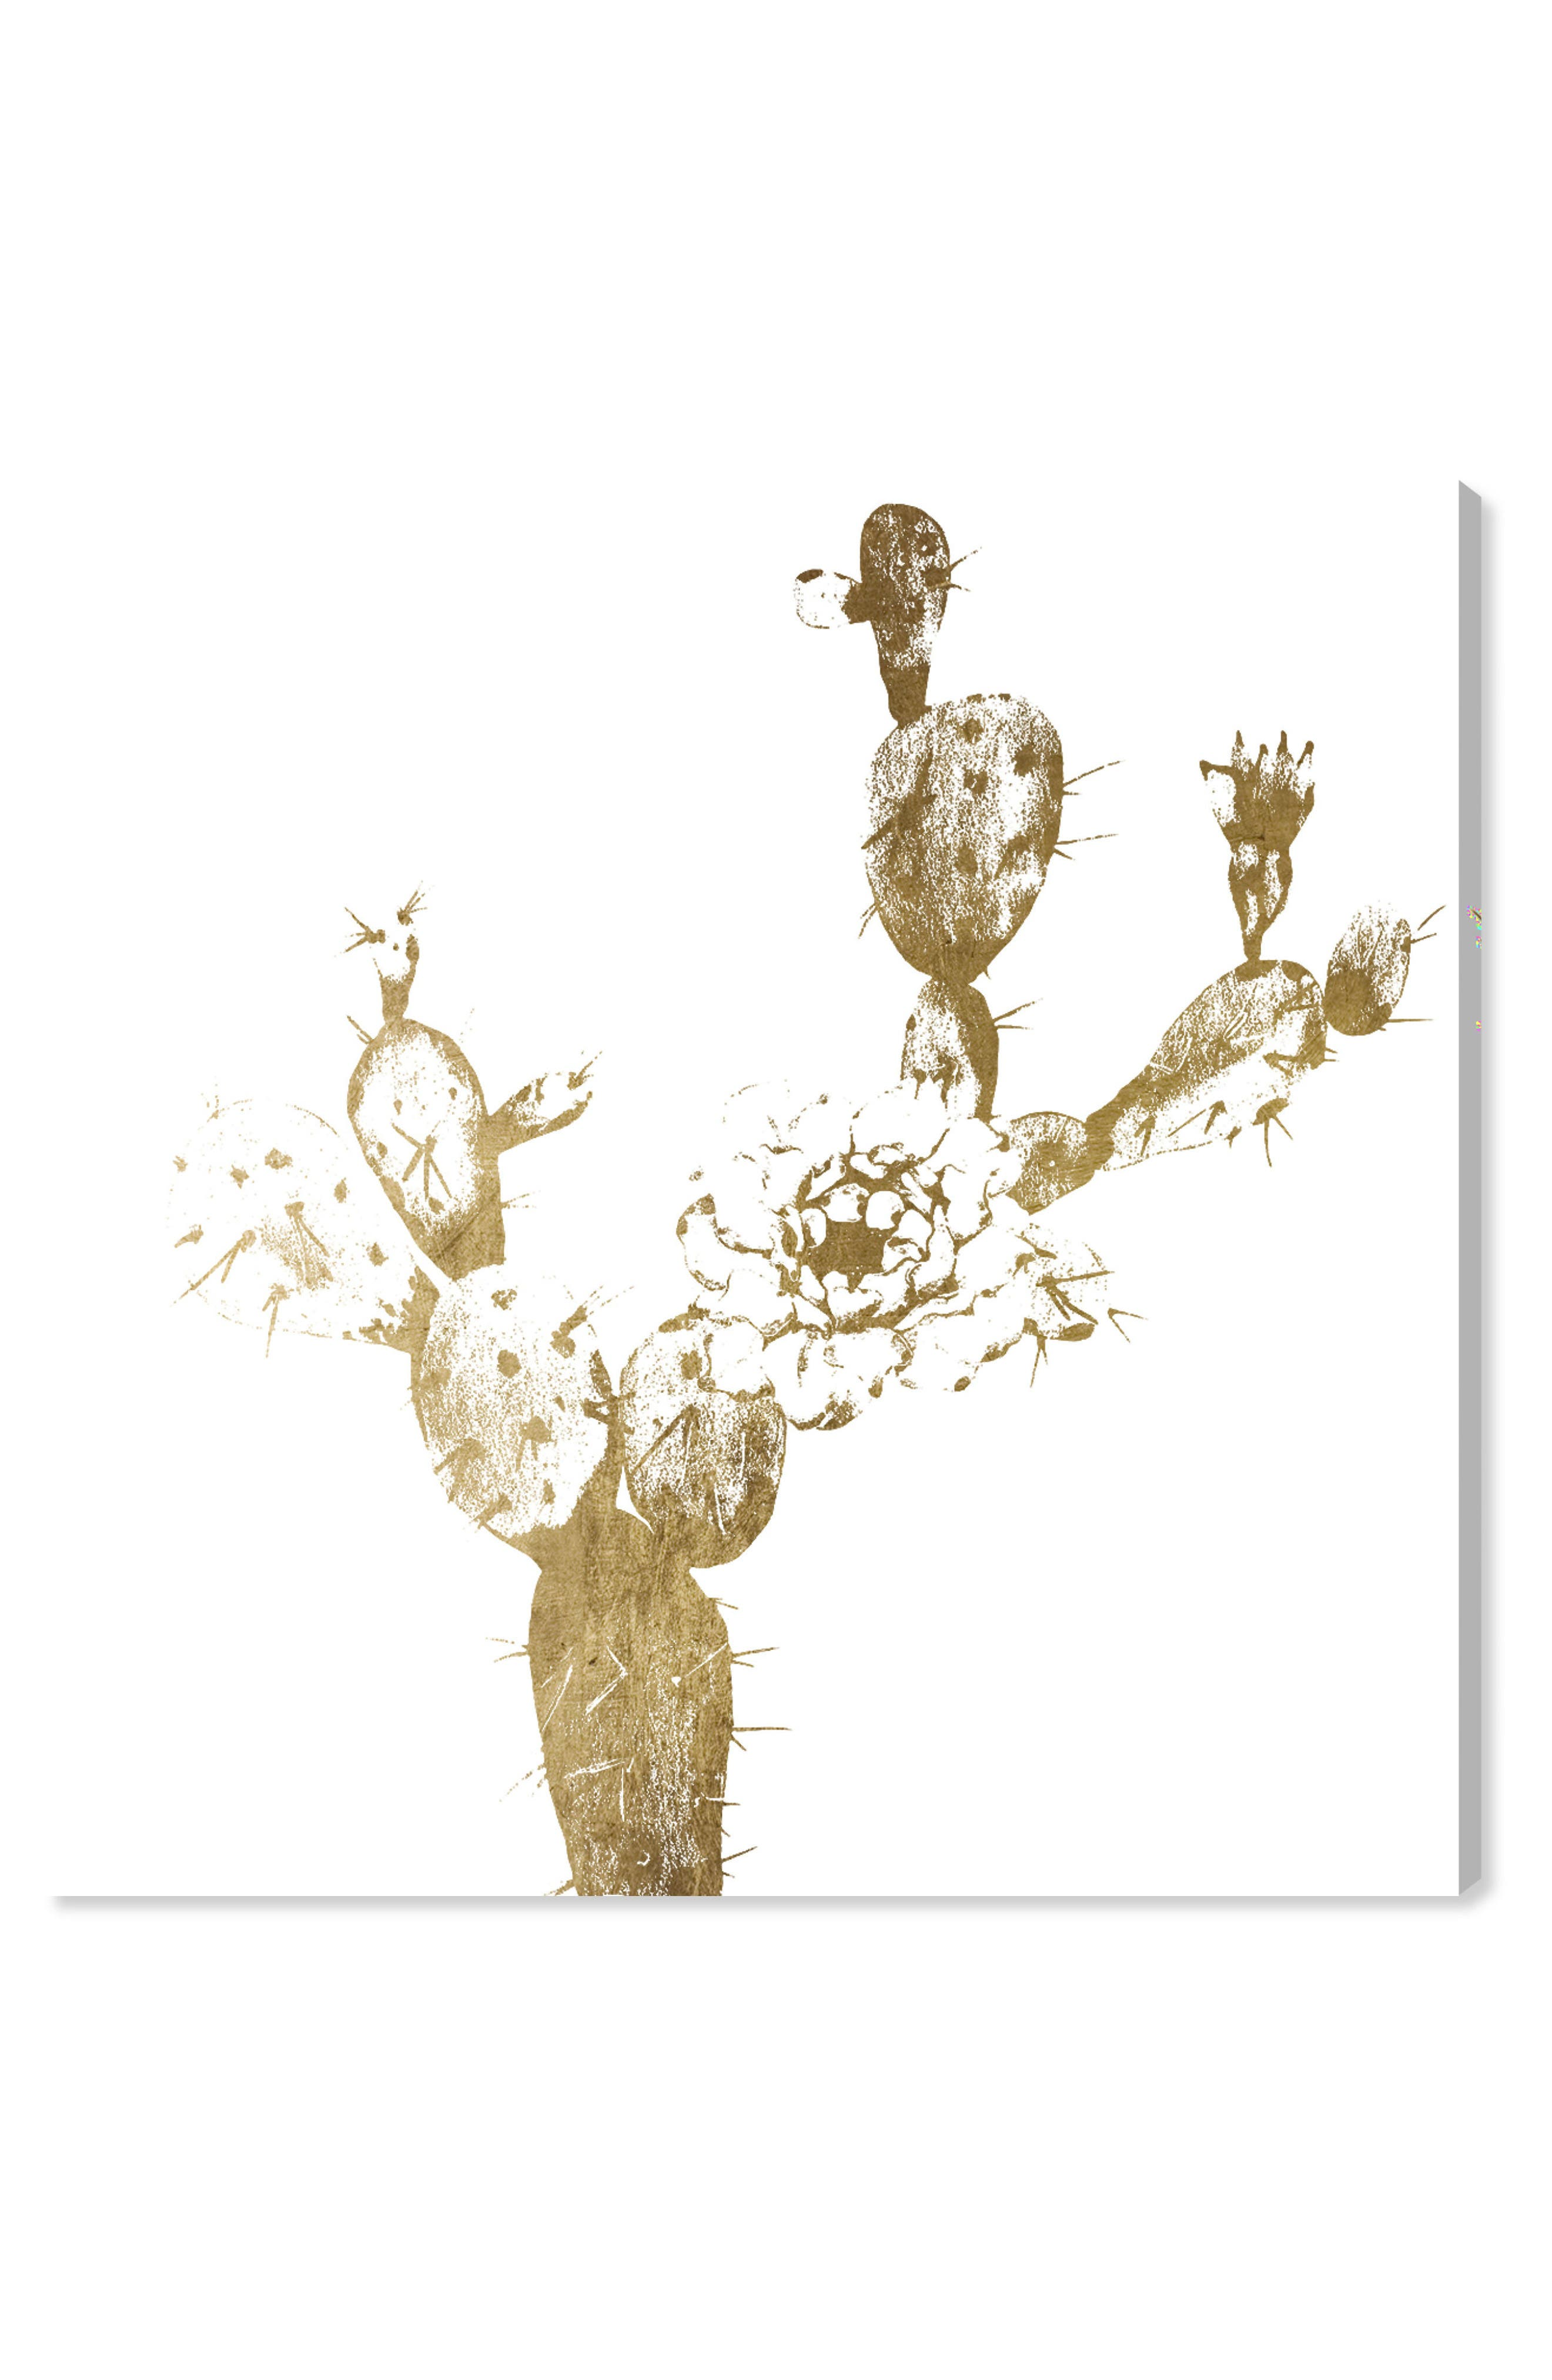 Alternate Image 1 Selected - Oliver Gal Cactus Gold I Canvas Wall Art